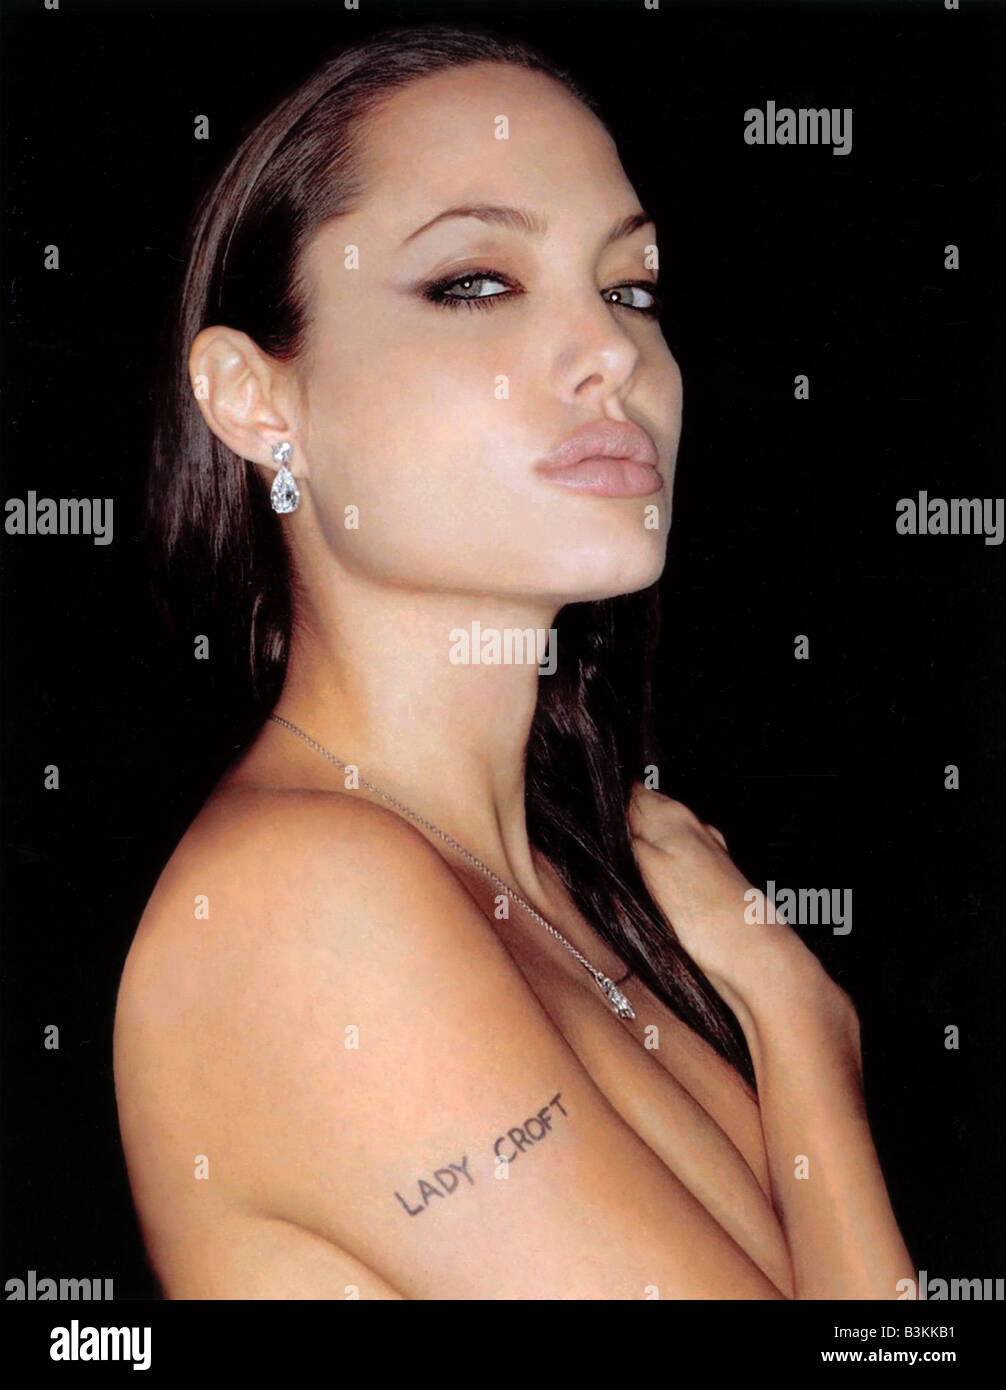 Lara Croft Tomb Raider 2001 Paramount Film With Angelina Jolie